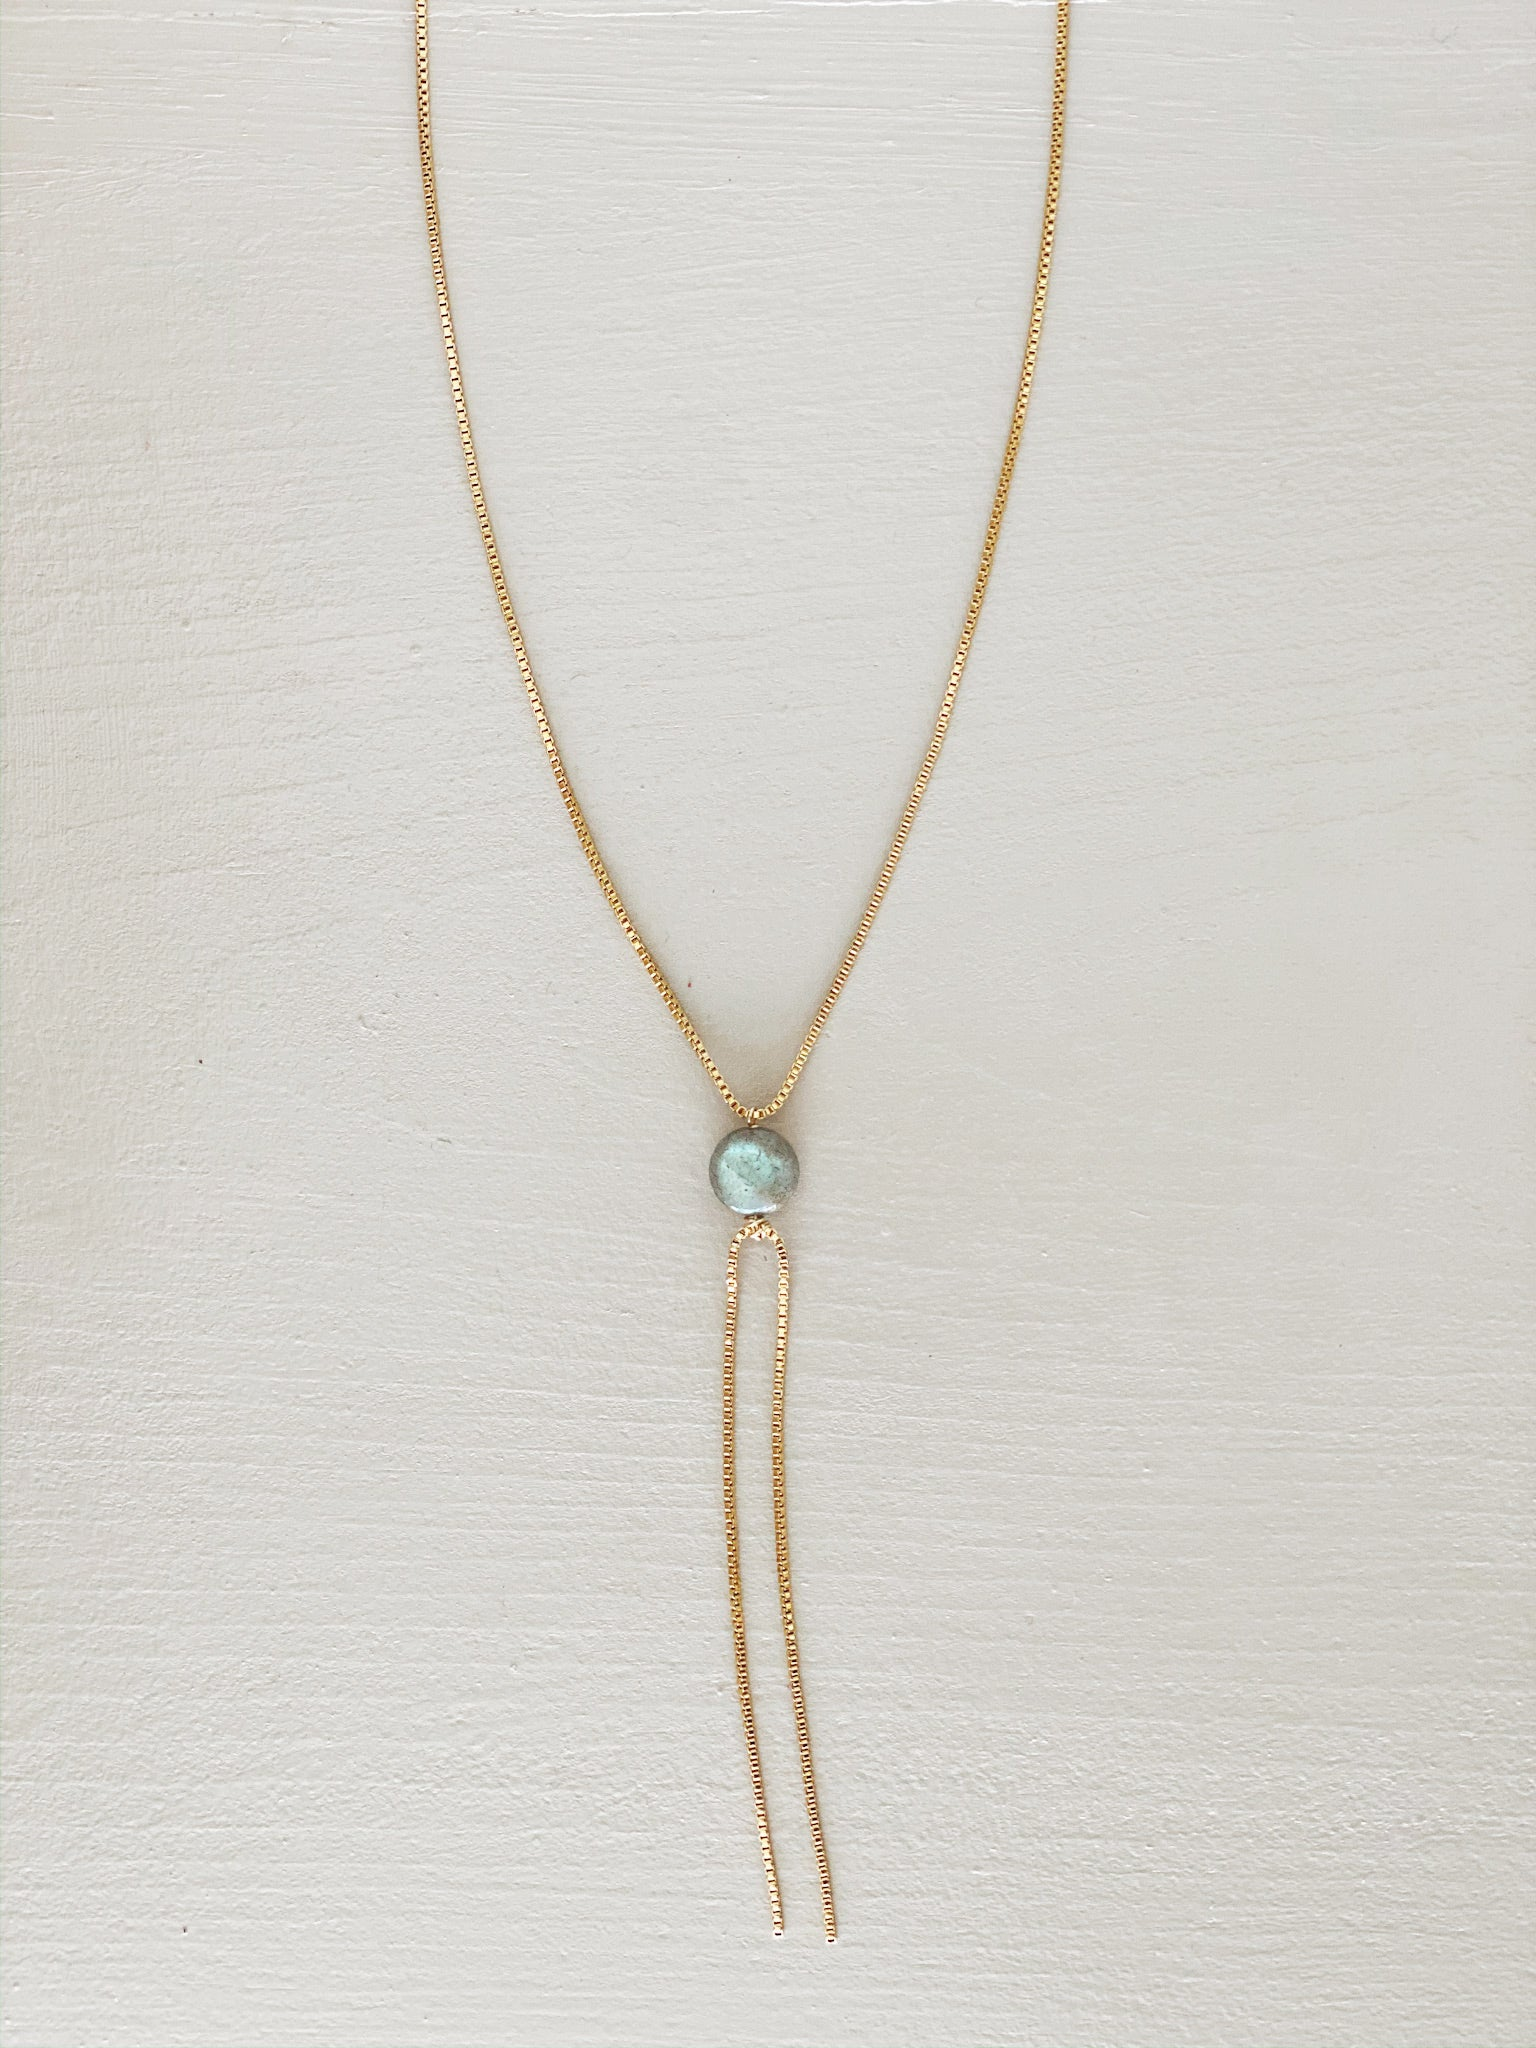 Balanced Rock Necklace- Labradorite